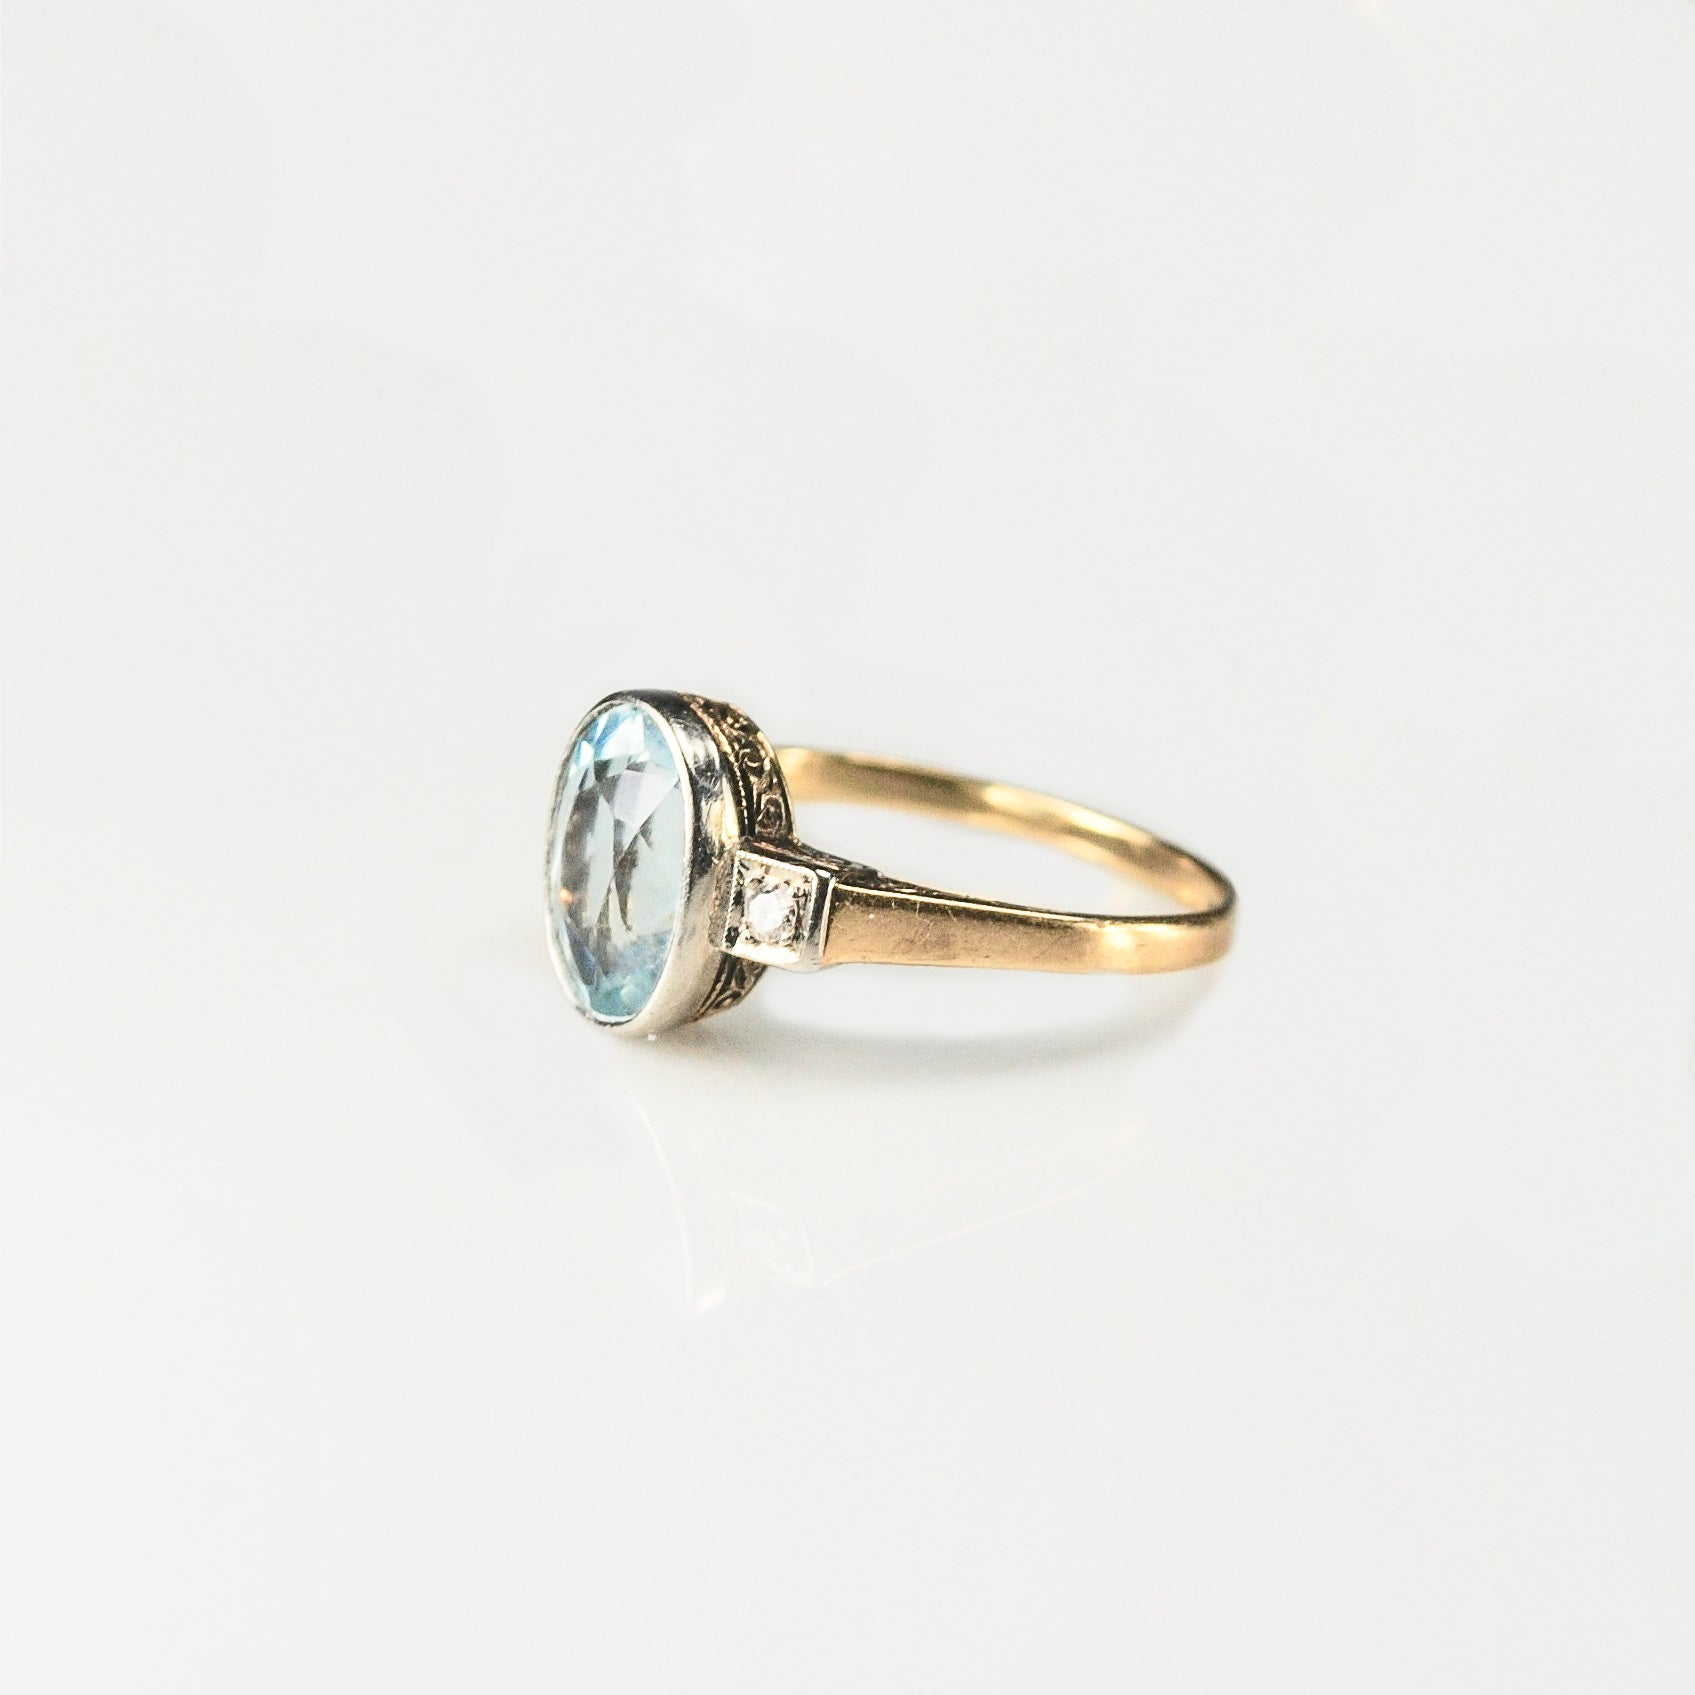 Art Deco Aquamarine, 14ct Gold ring with diamond shoulders c.1930s **SOLD**